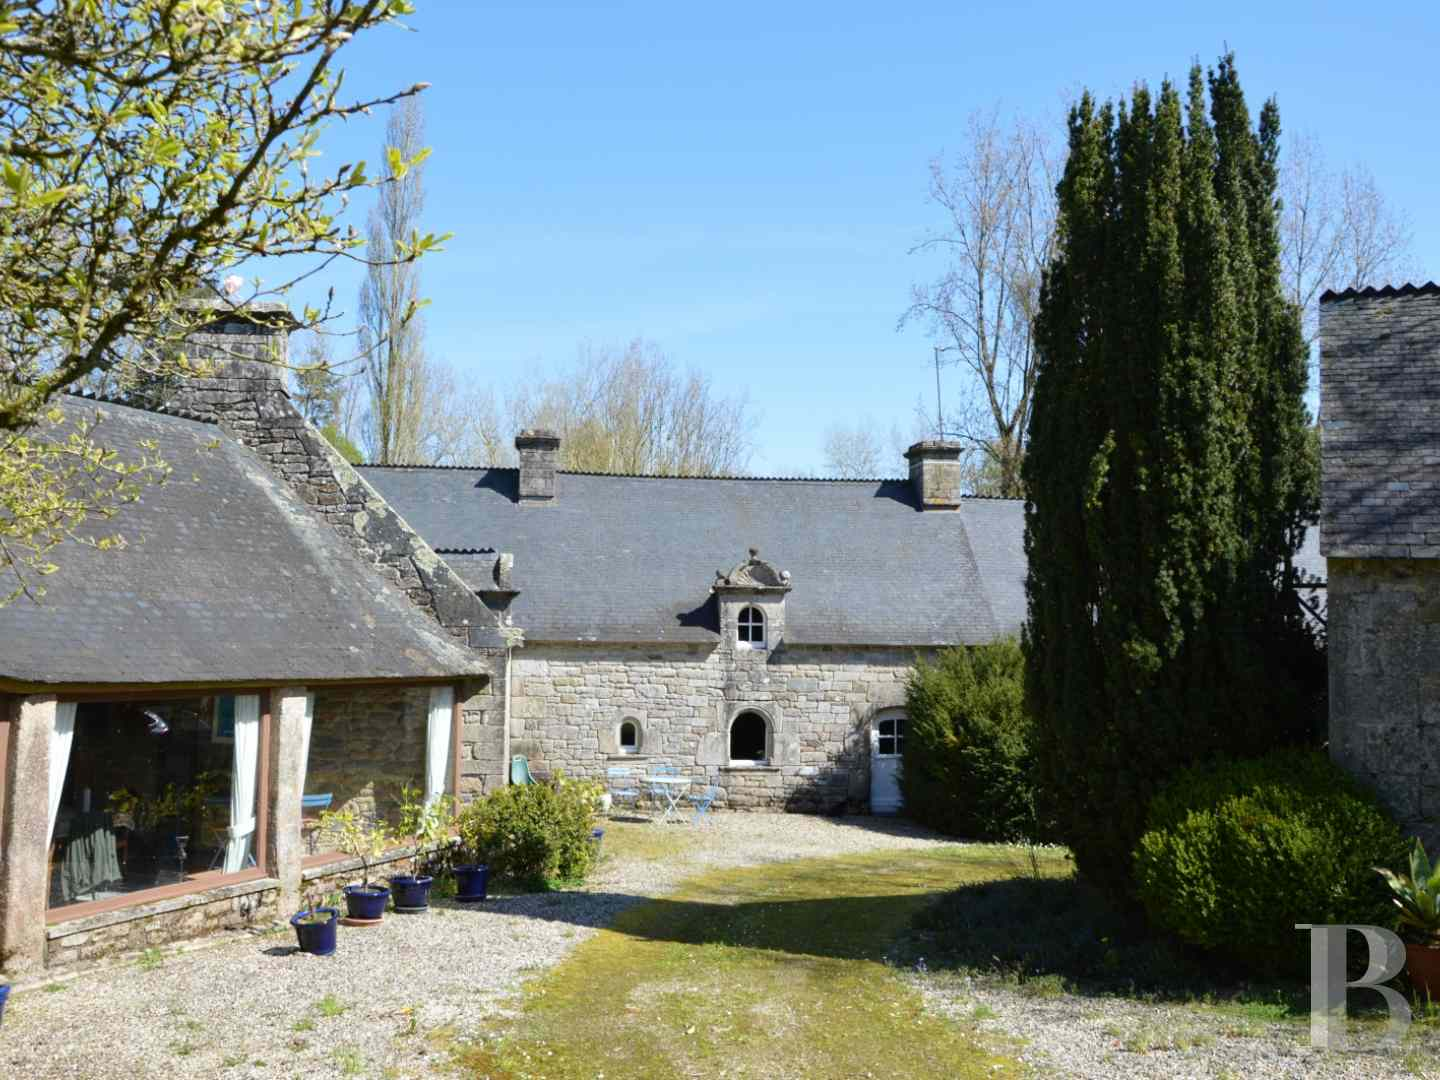 property for sale France brittany residences for - 3 zoom